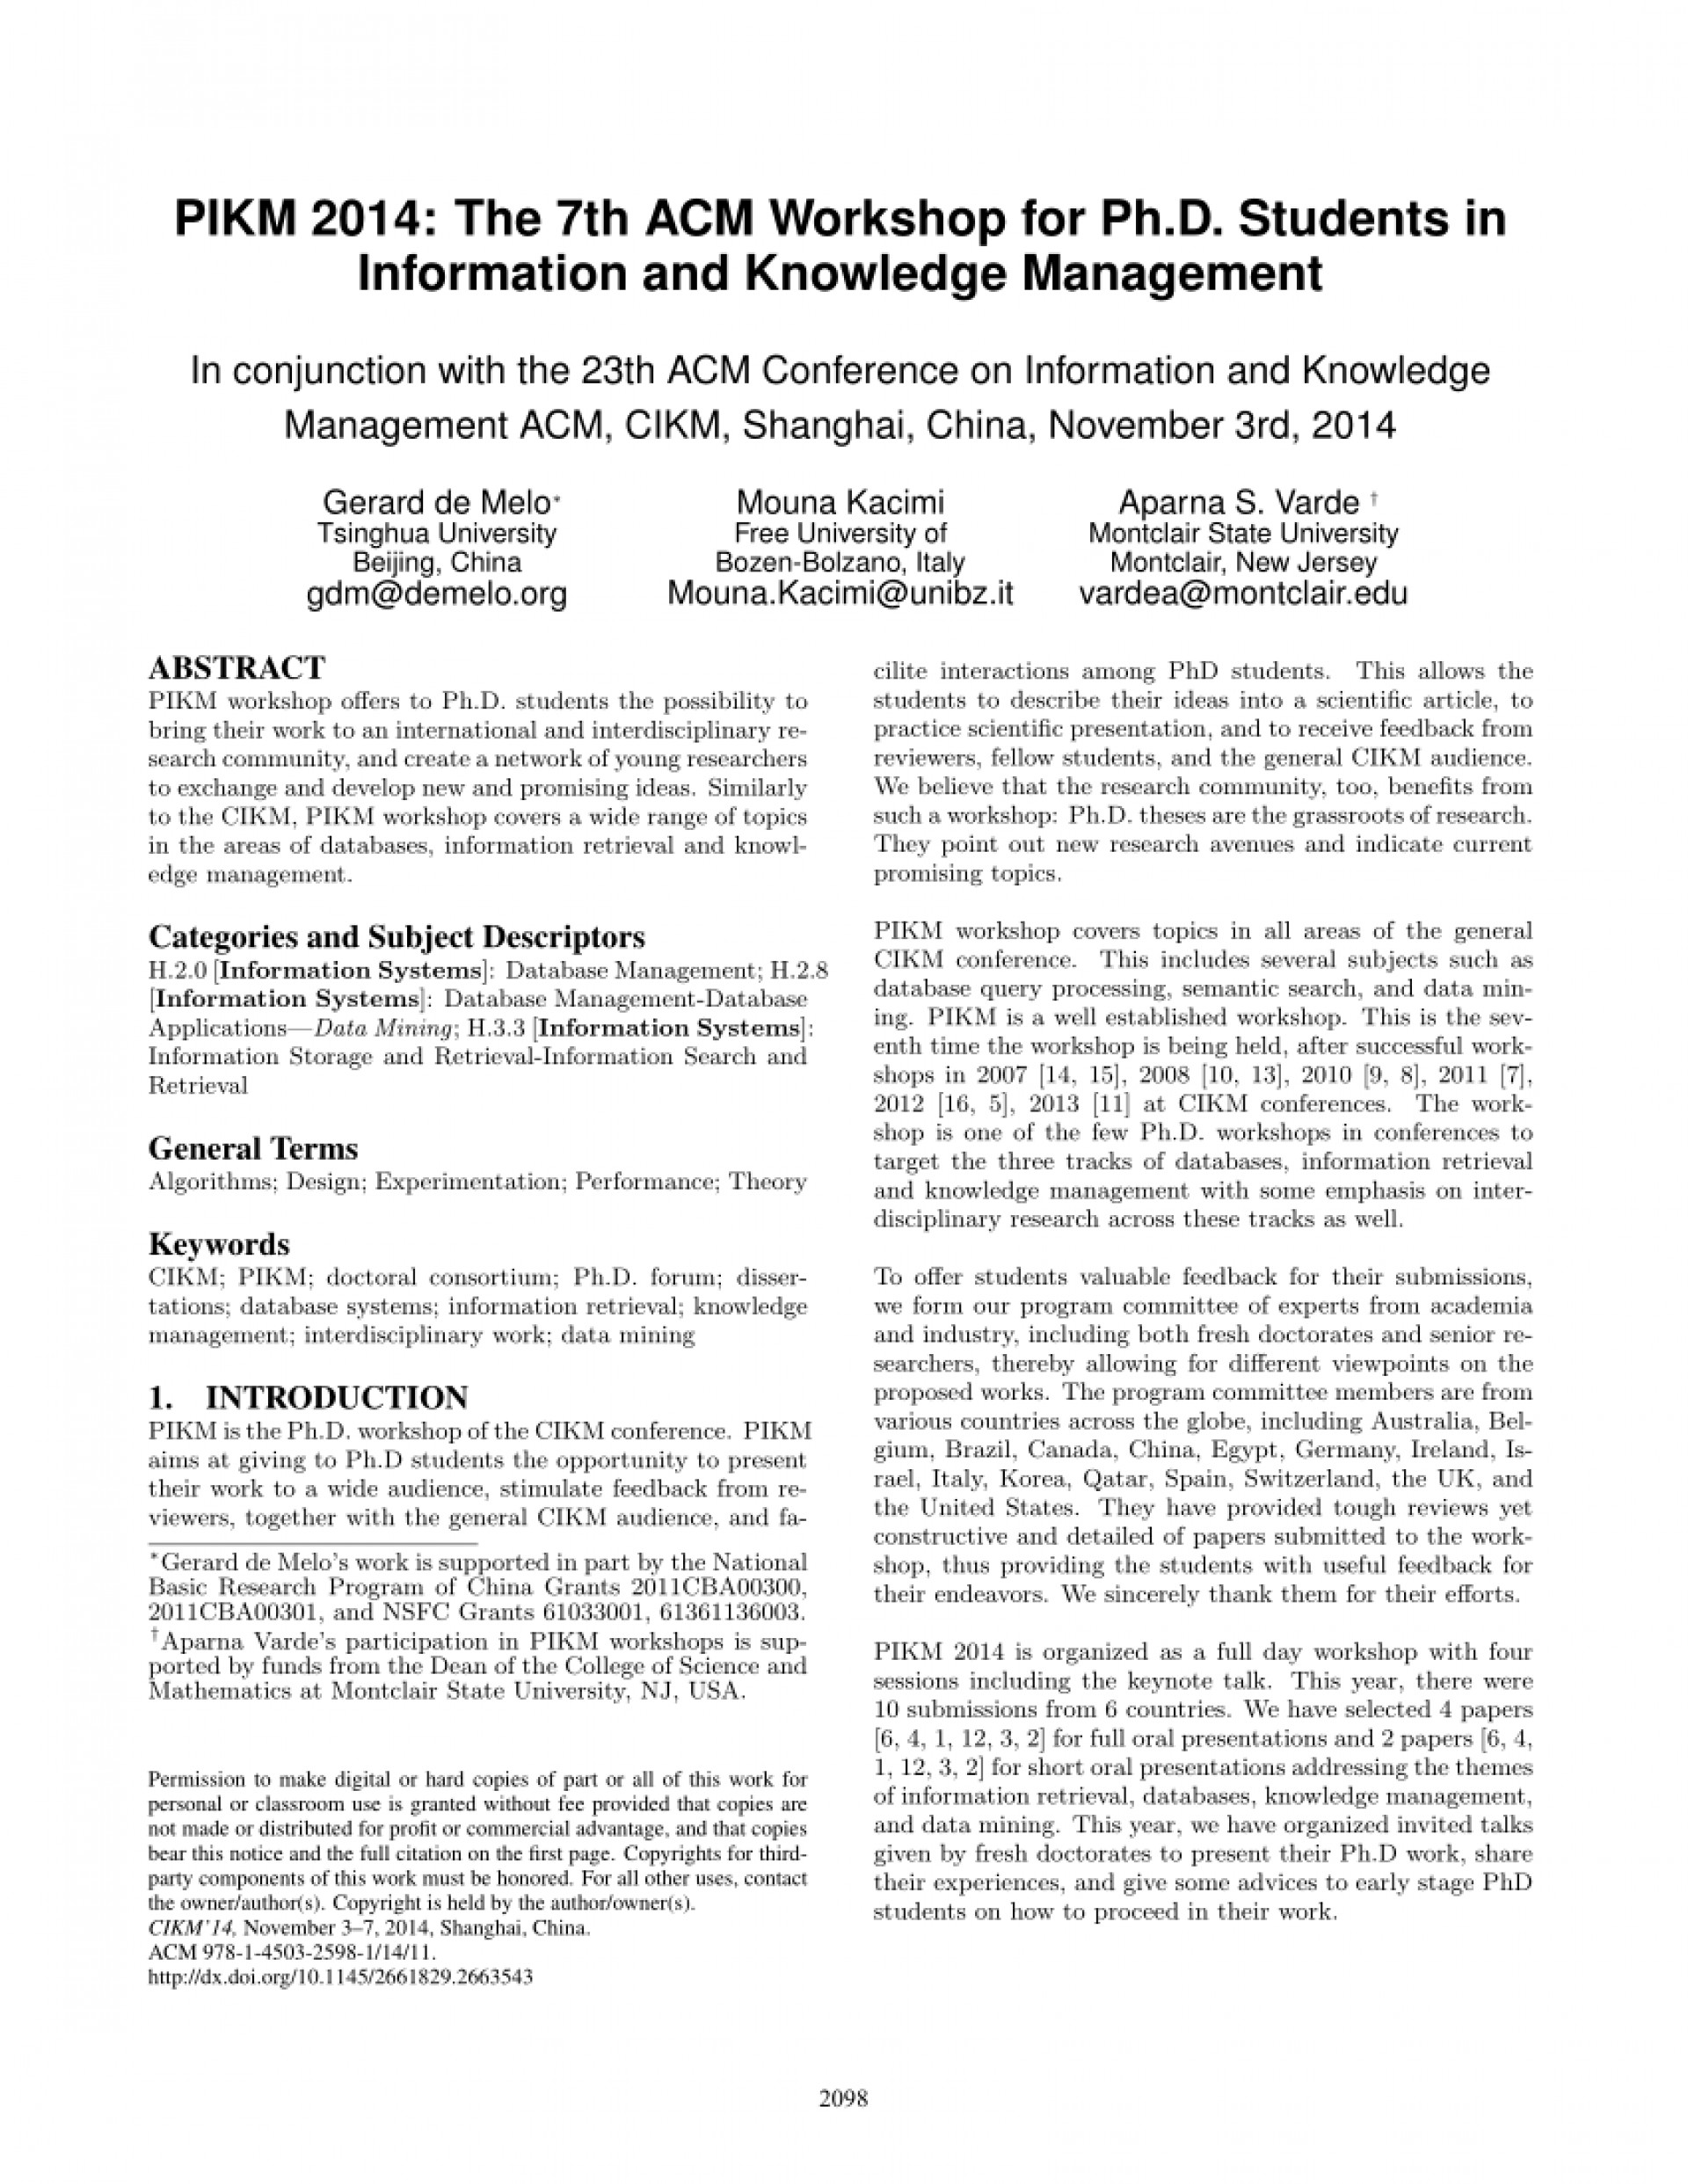 003 Database Management Research Paper Topics Amazing On System 1920